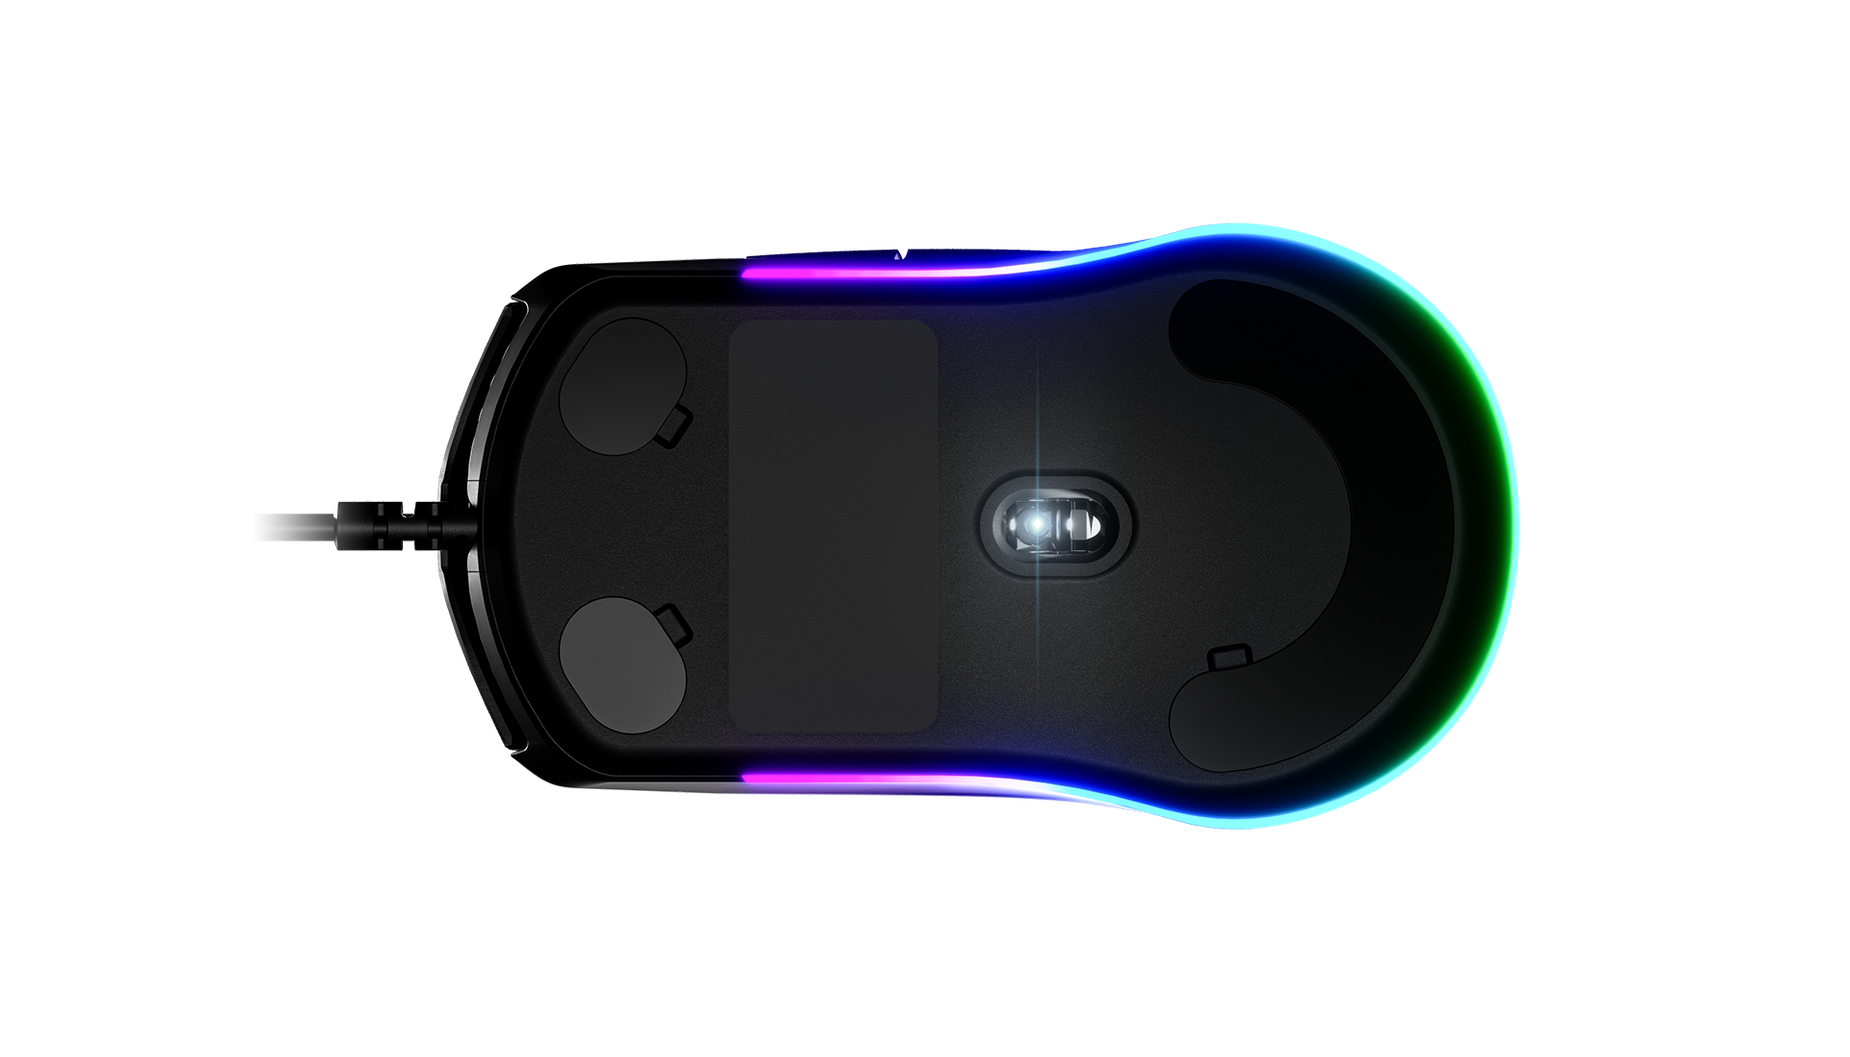 Rival 3 gaming mouse bottom view